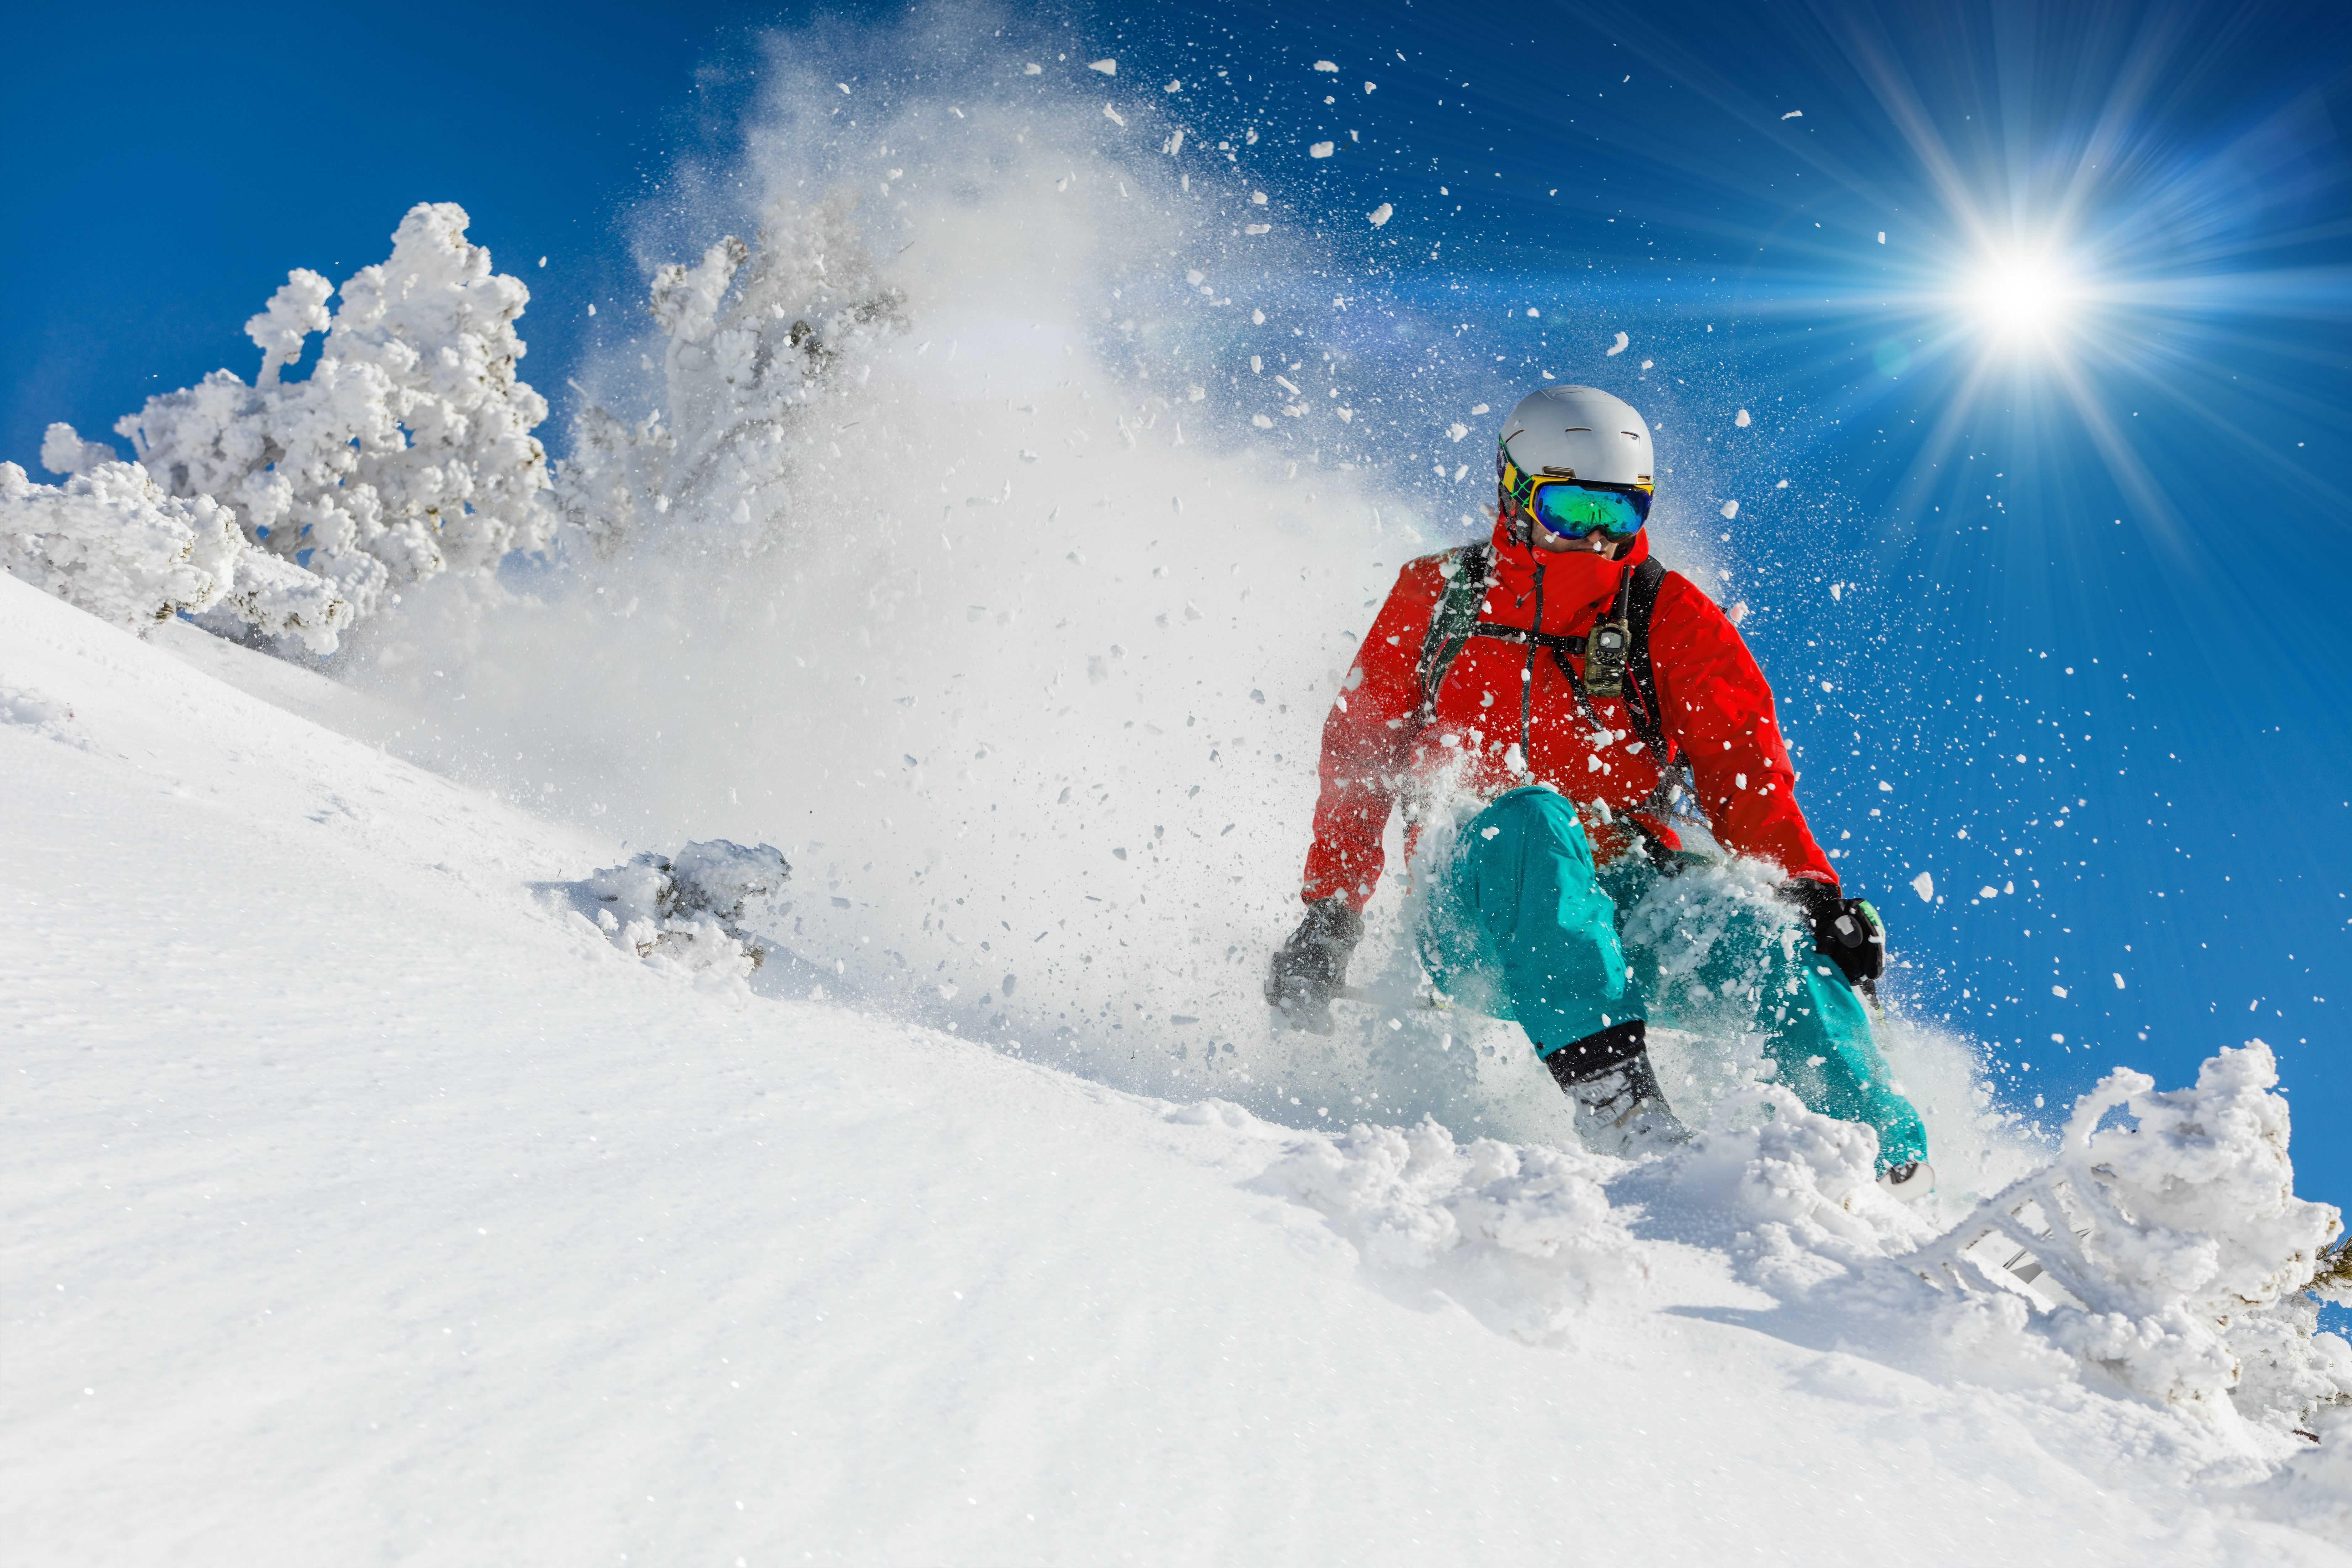 Skiing Wallpaper Skiing Wallpapers 1080p High Quality Skiing Category